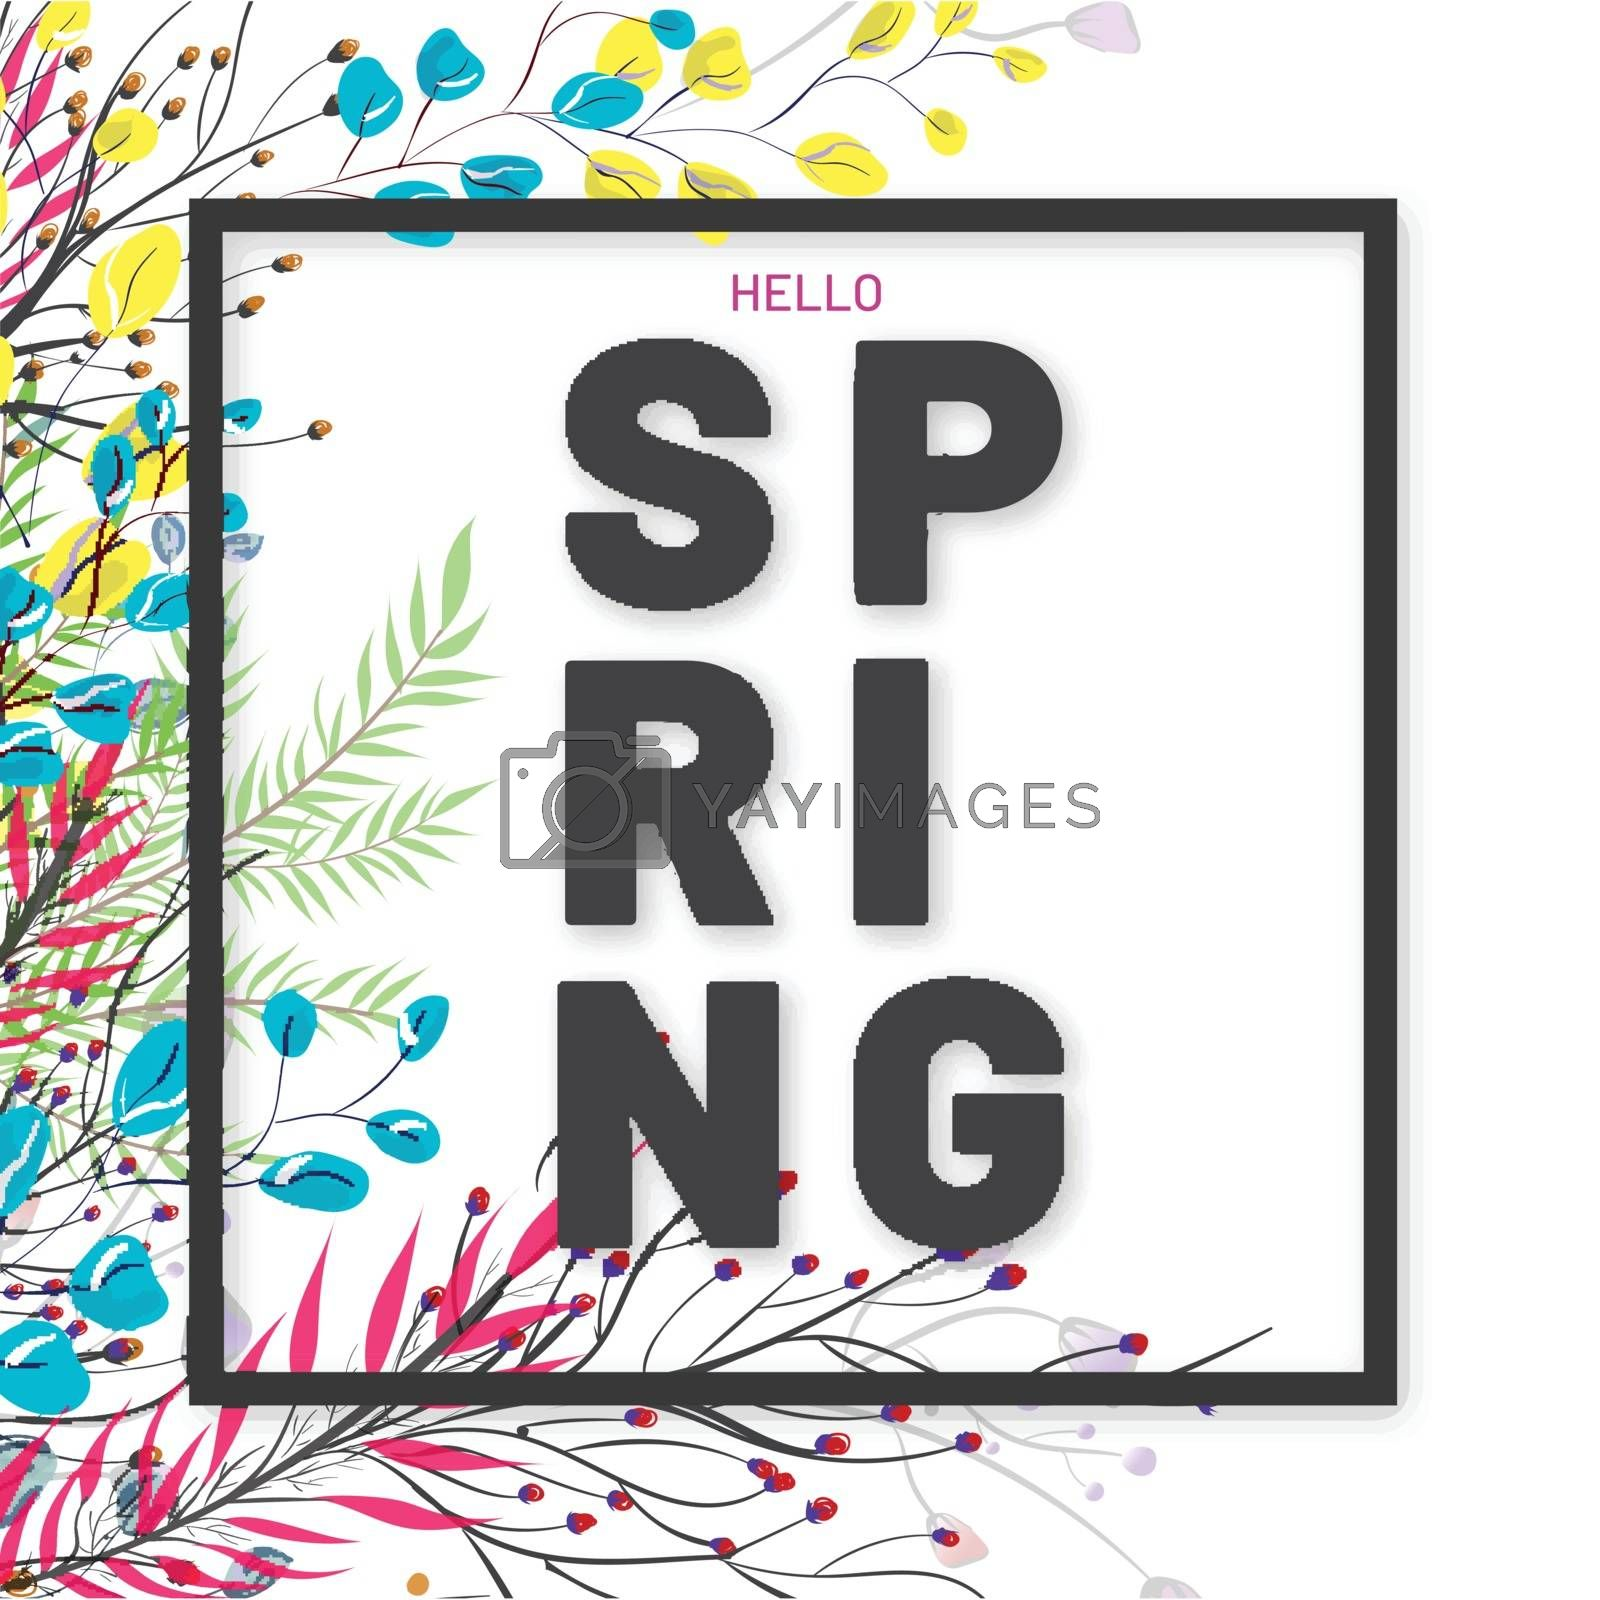 Royalty free image of Hello Spring greeting card design decorated with floral on white by aispl